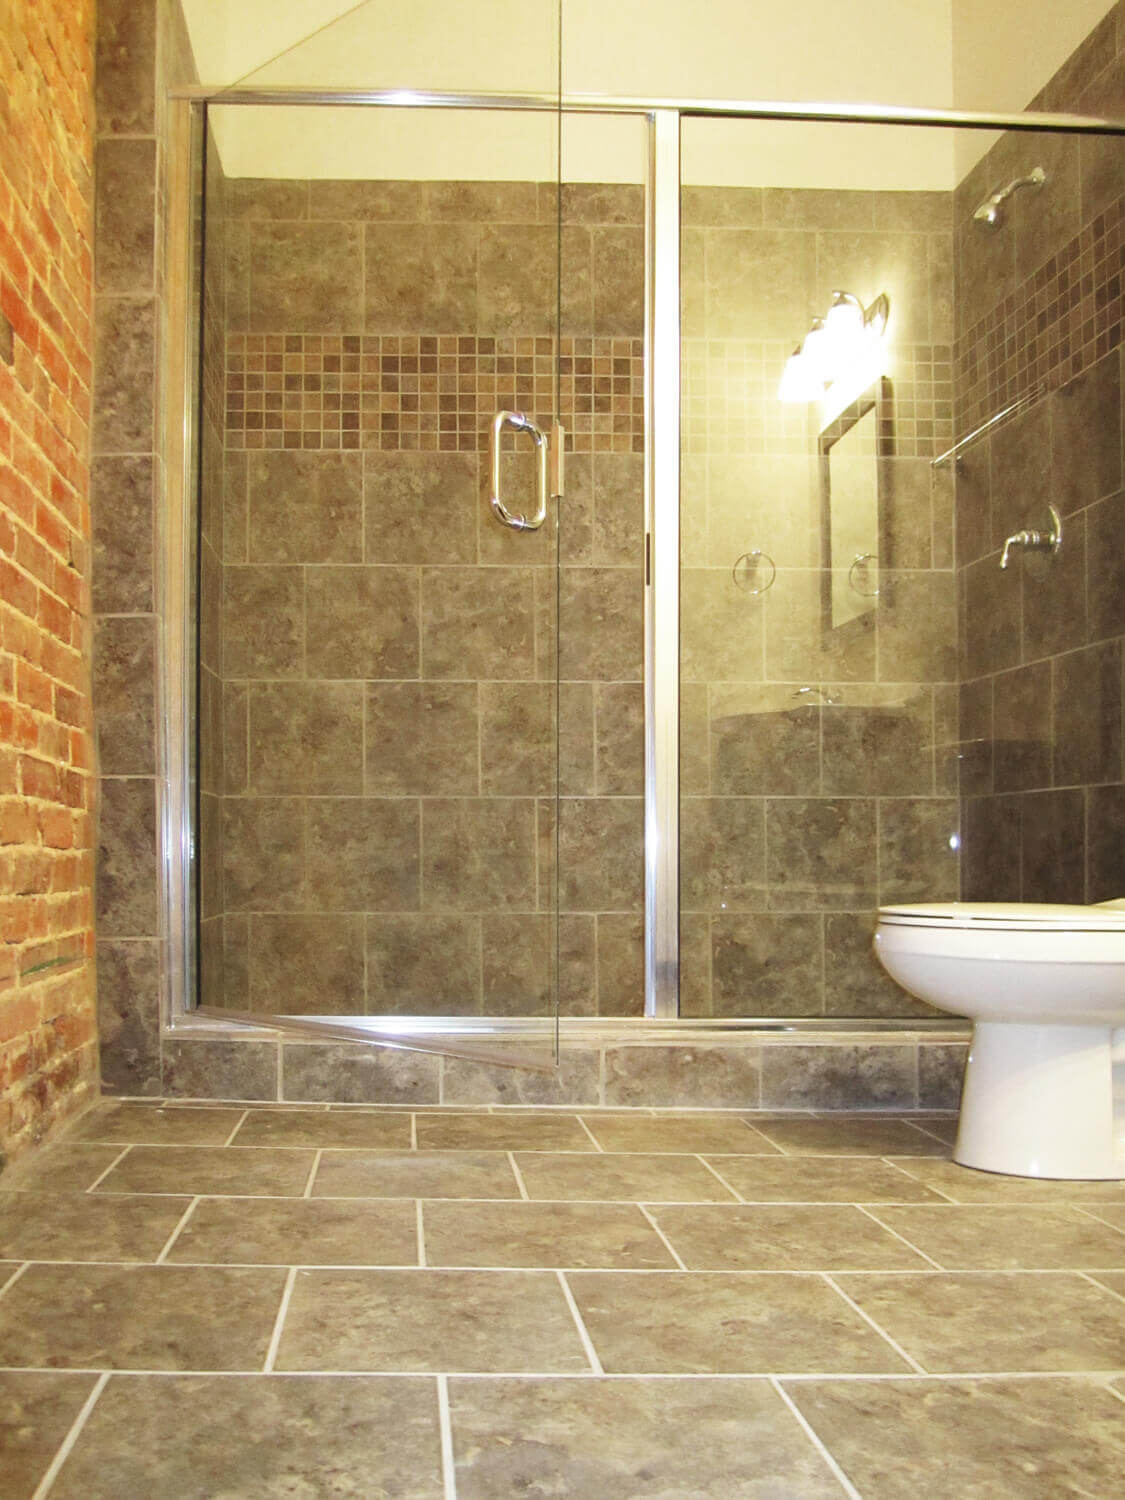 Printing Press Lofts Designed by Foshee Architecture - Apartment Bathroom with a Tile Shower